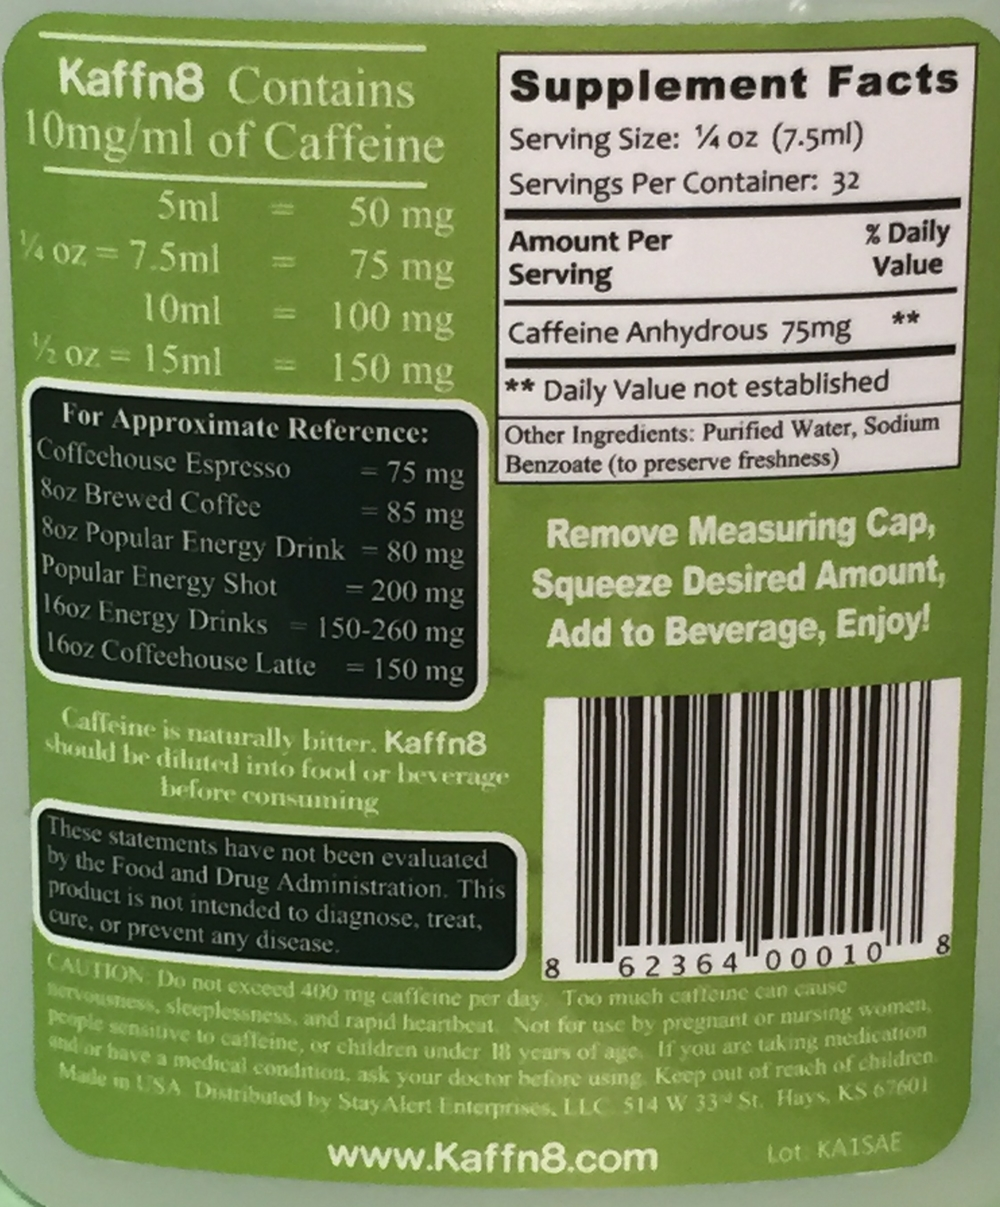 Kaffn8 back label.jpg